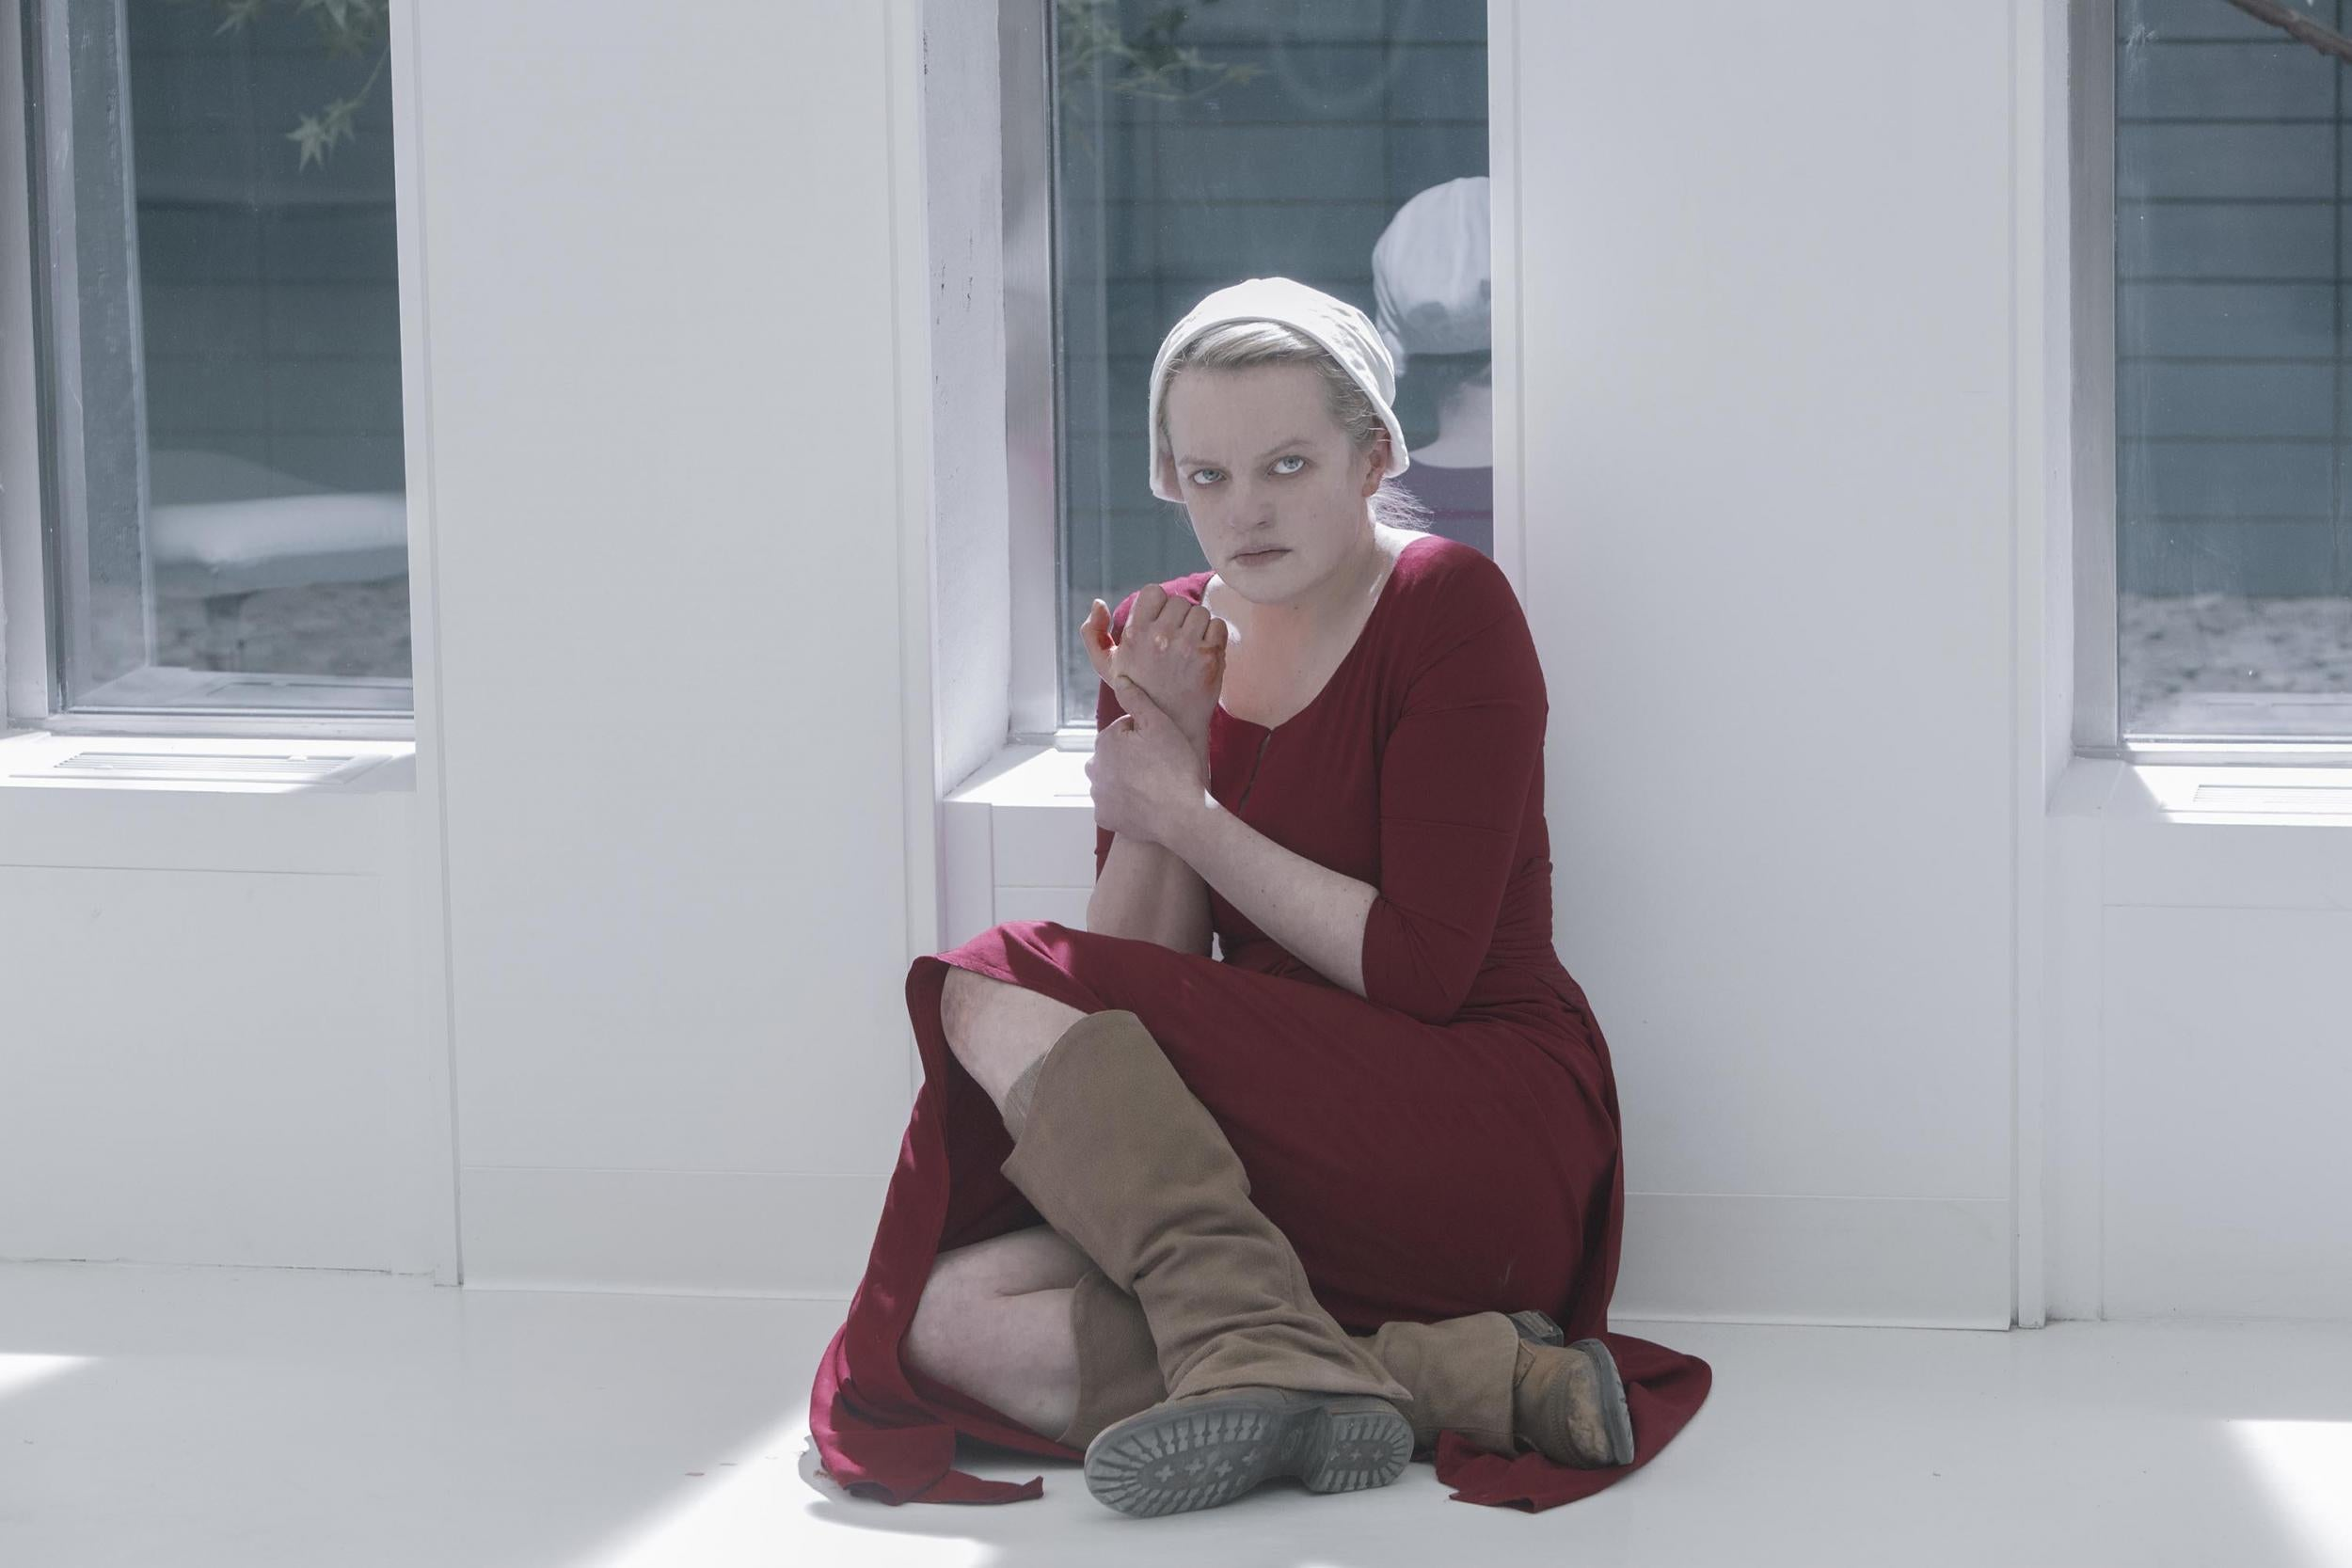 The Handmaid's Tale review, season 3 episode 9: Our noses